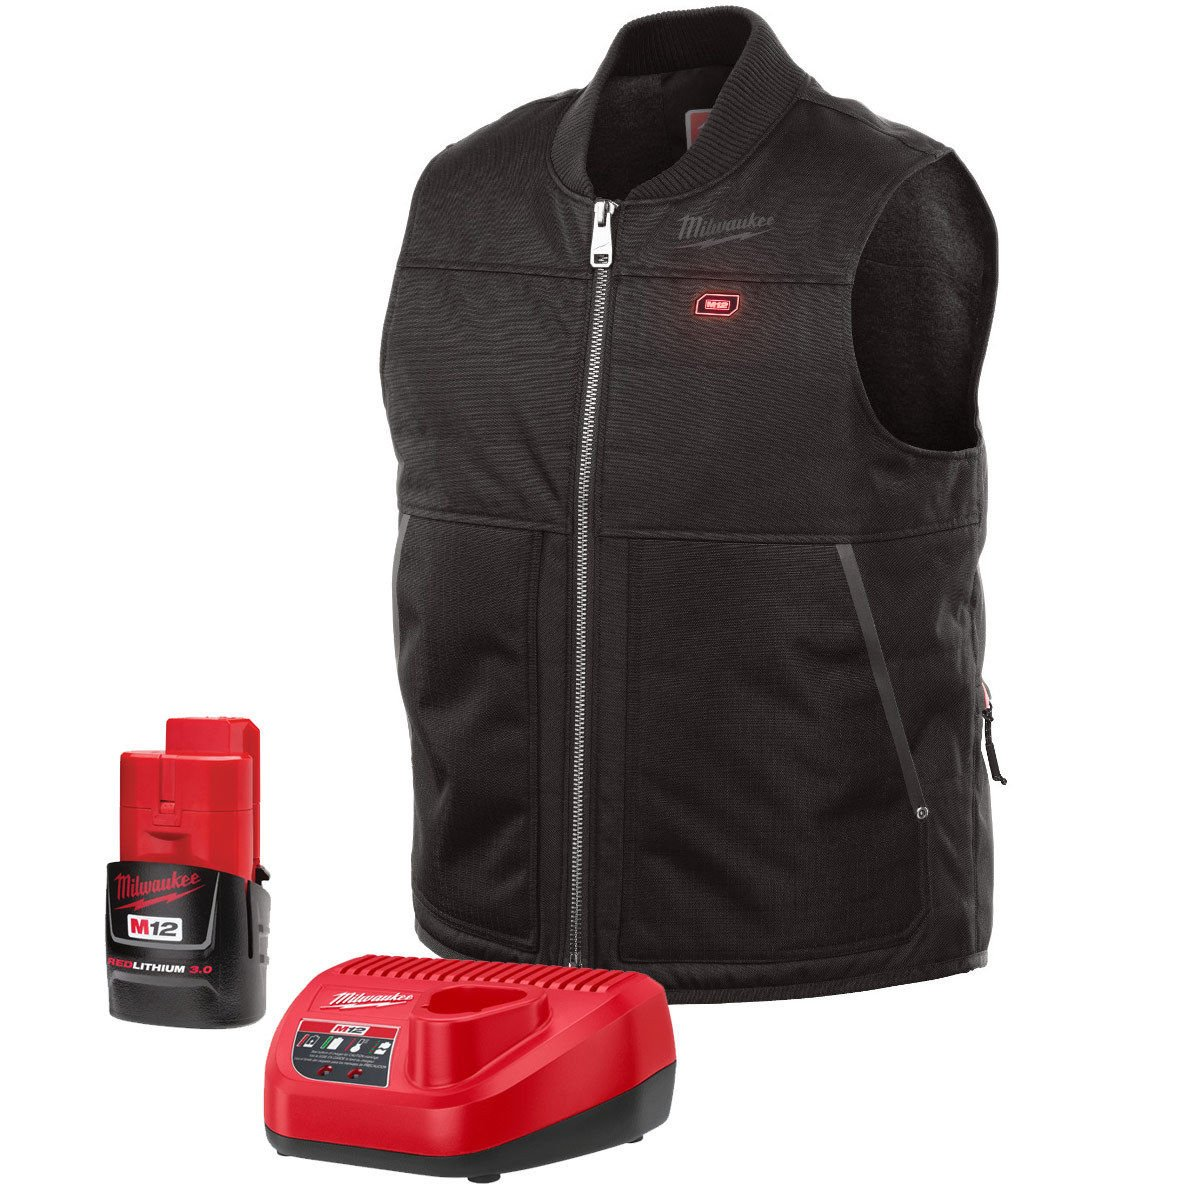 Milwaukee Vest KIT M12 12V Lithium-Ion Heated Front and Back Heat Zones - Black Color All Sizes -Battery and Charger Included- (Extra Large)